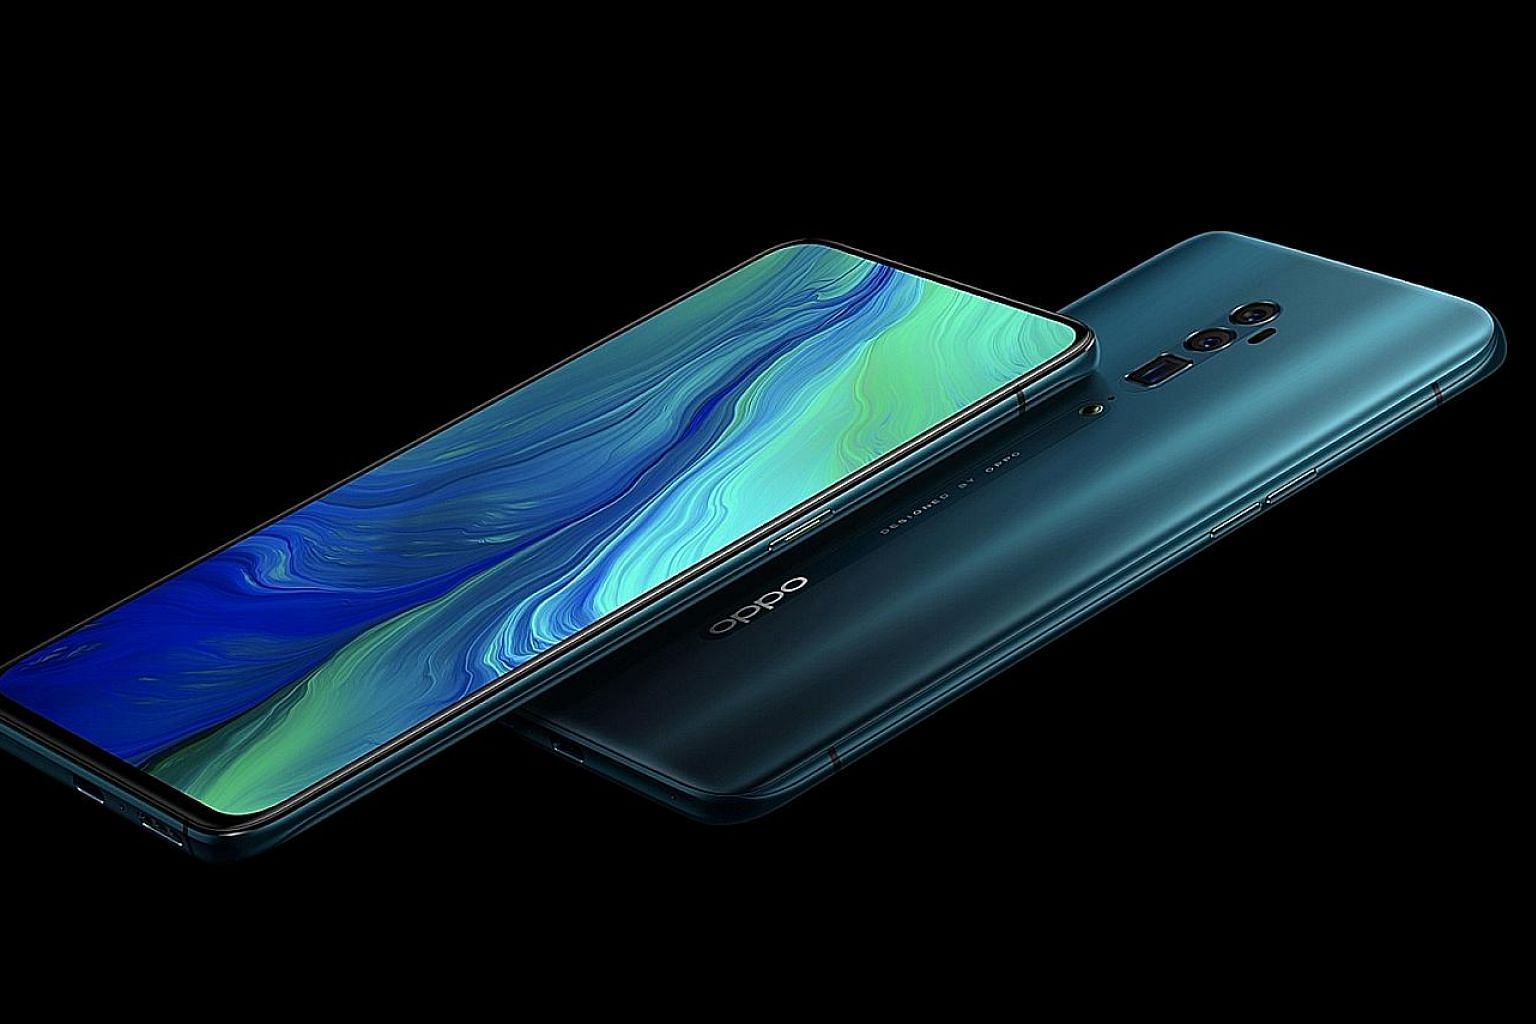 The Oppo Reno 10x Zoom boasts a 5x optical zoom telephoto camera and its camera app comes with wide-angle, 2x, 6x and 10x presets.